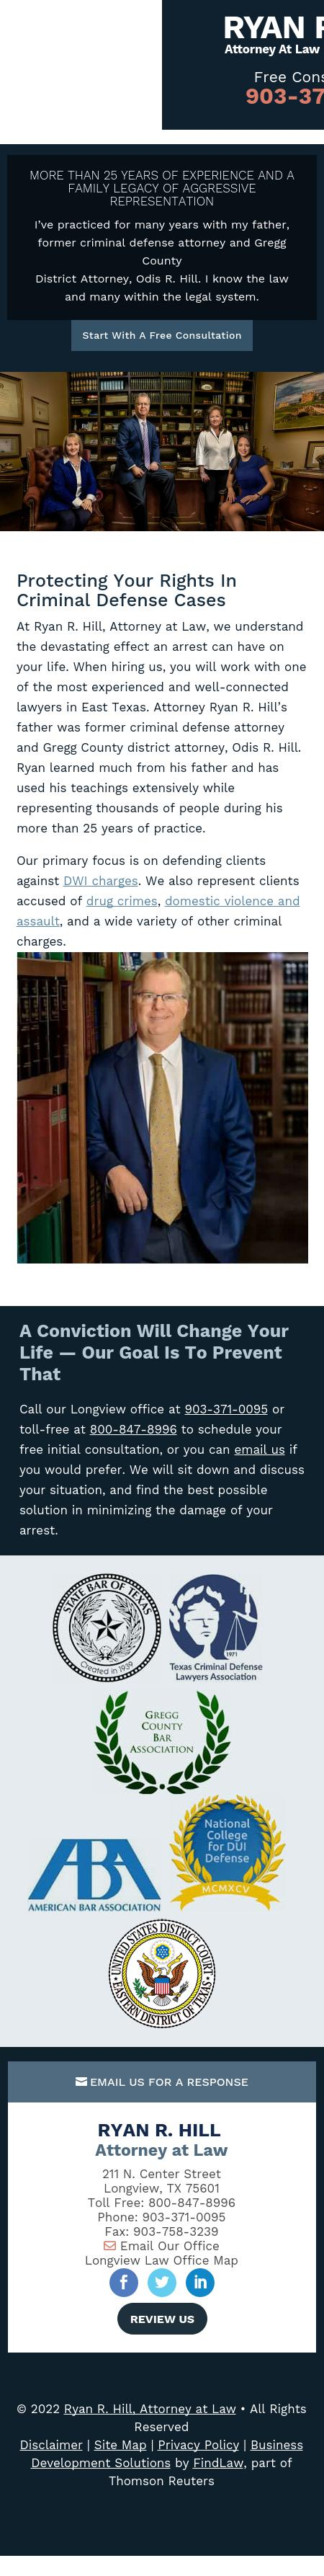 Ryan R. Hill, Attorney at Law - Longview TX Lawyers